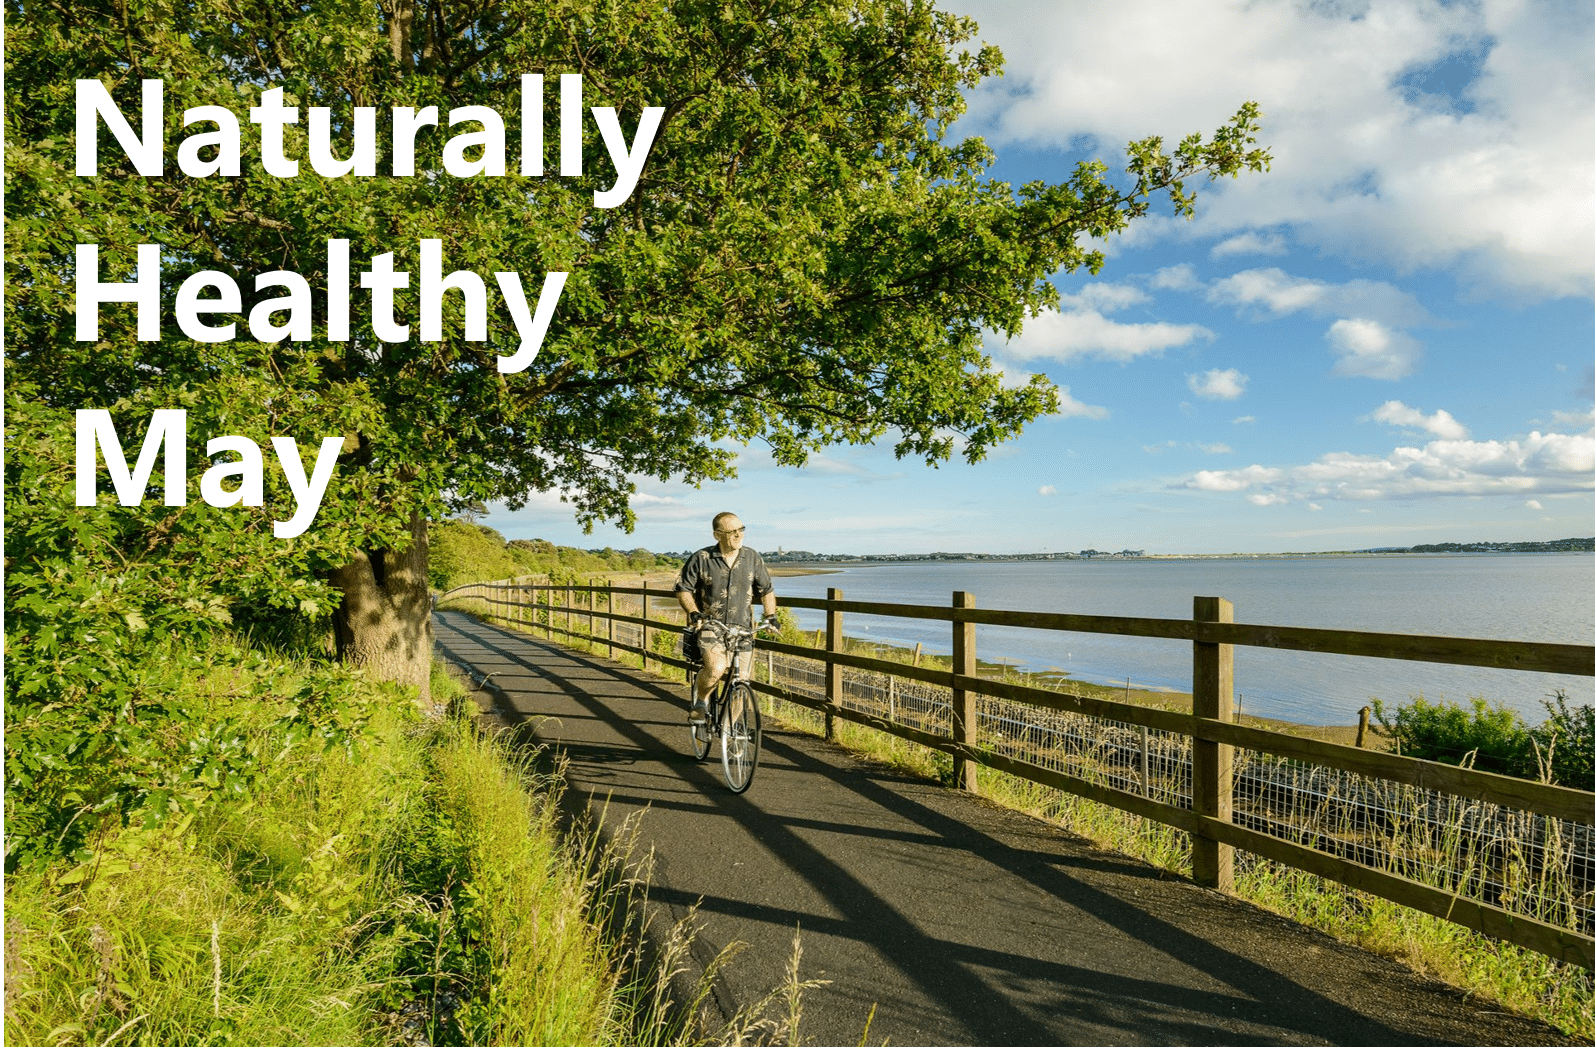 Photo of a cyclist on the Exe Estuary Trail and the words 'Naturally Healthy May'.